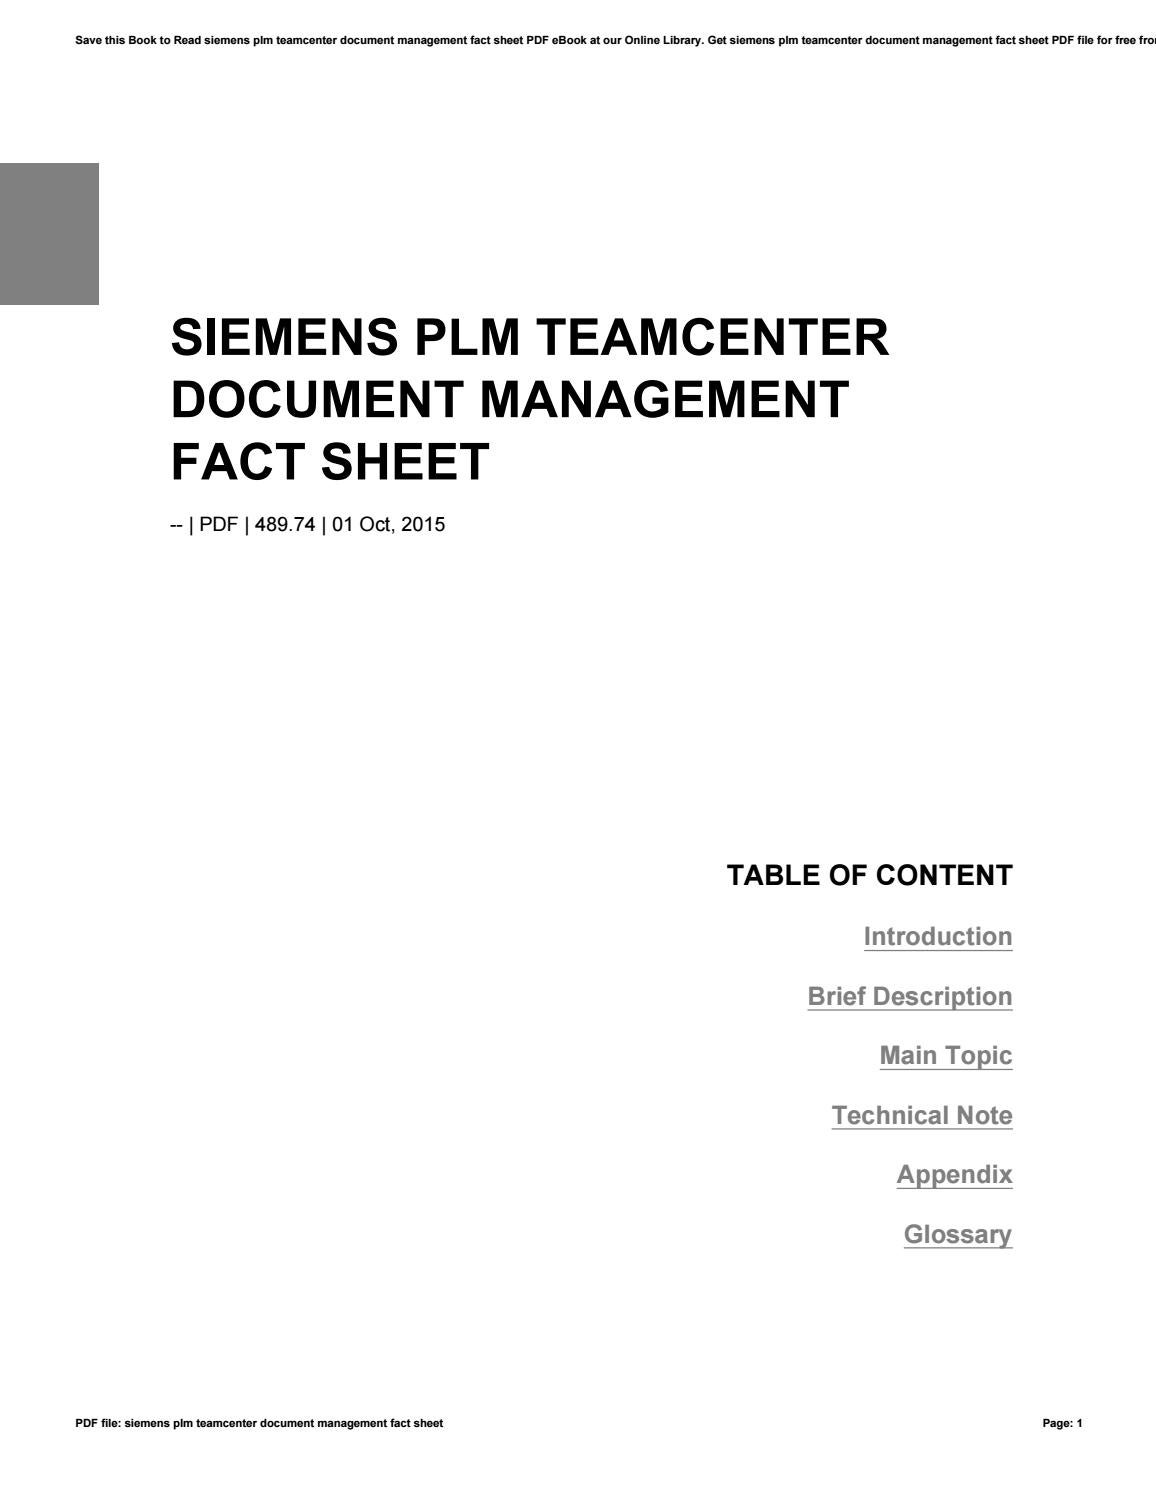 Teamcenter plm tutorial pdf.